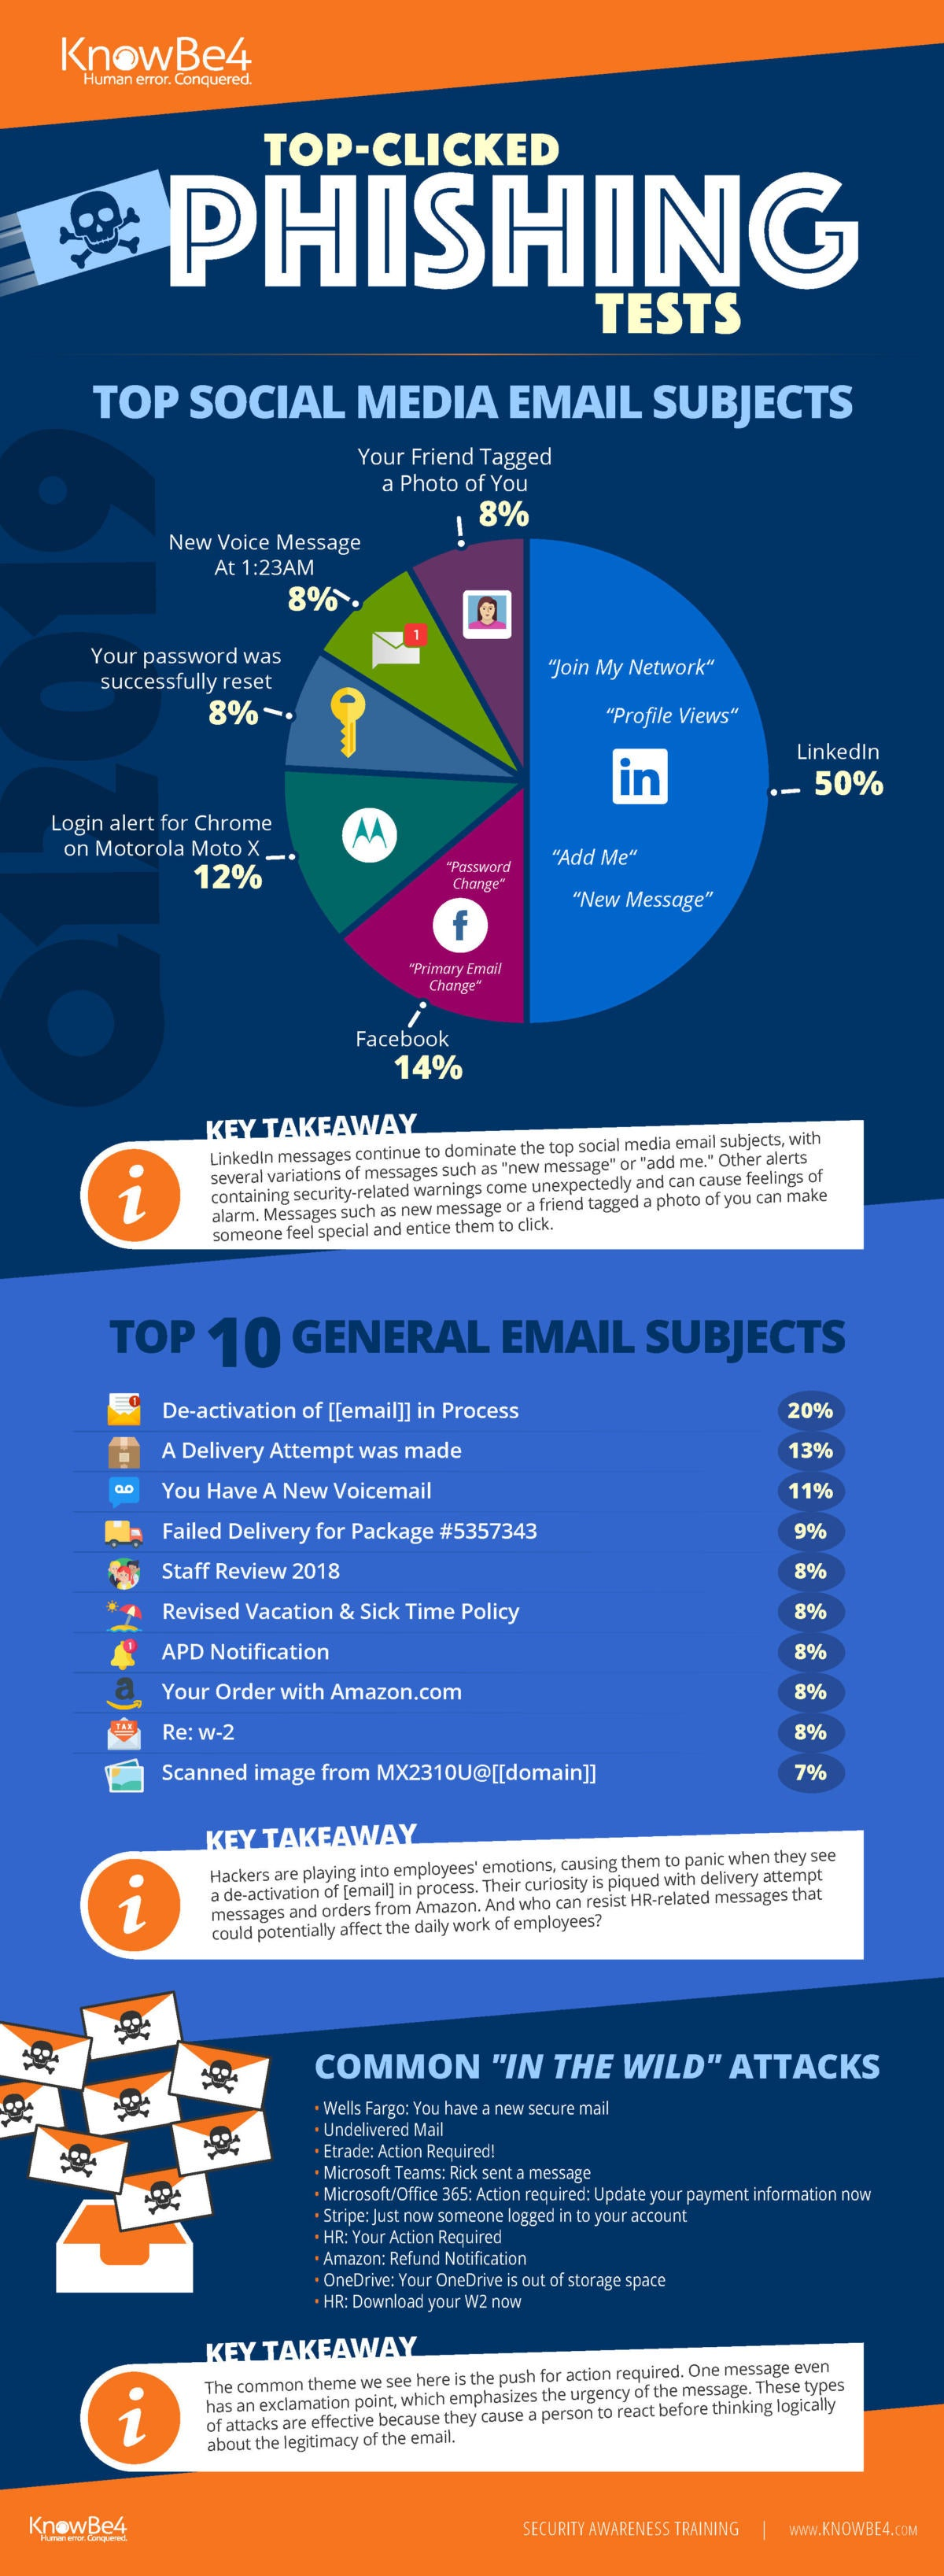 q12019 knowbe4 phishing infographic  - q12019 knowbe4 phishing infographic 100795842 large - What is phishing? How this cyber attack works and how to prevent it